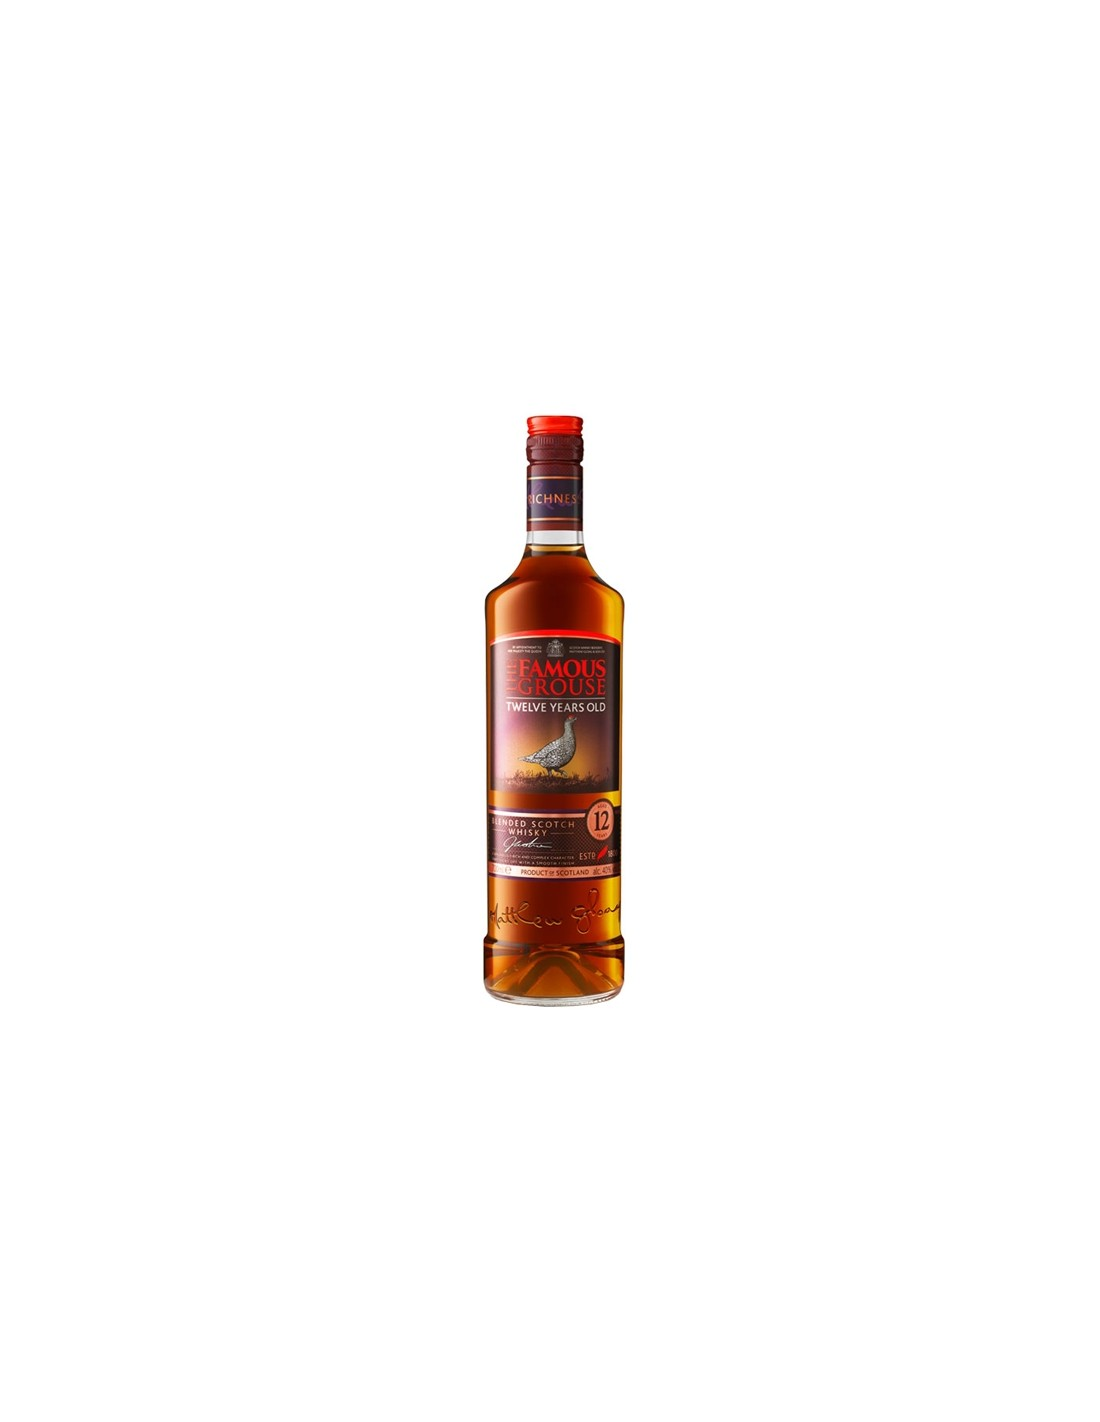 Blended Whisky Famous Grouse, 12 ani, 40% alc., 0.7L, Scotia